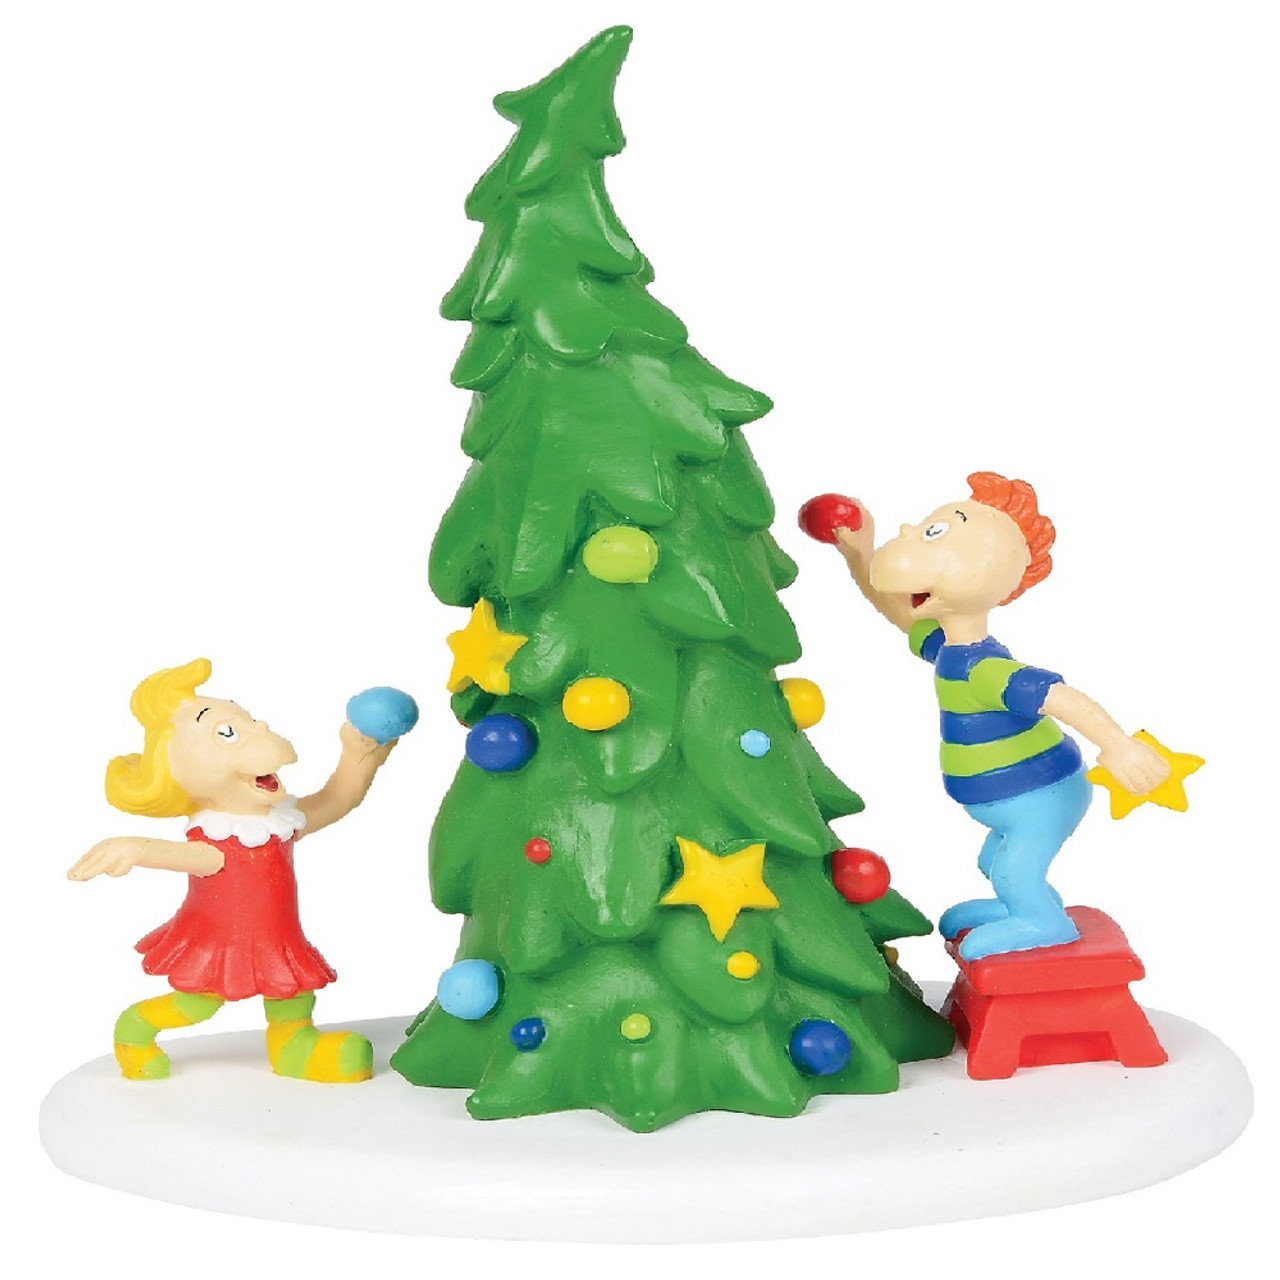 Department 56 Christmas Tree.Department 56 Who Ville Christmas Tree